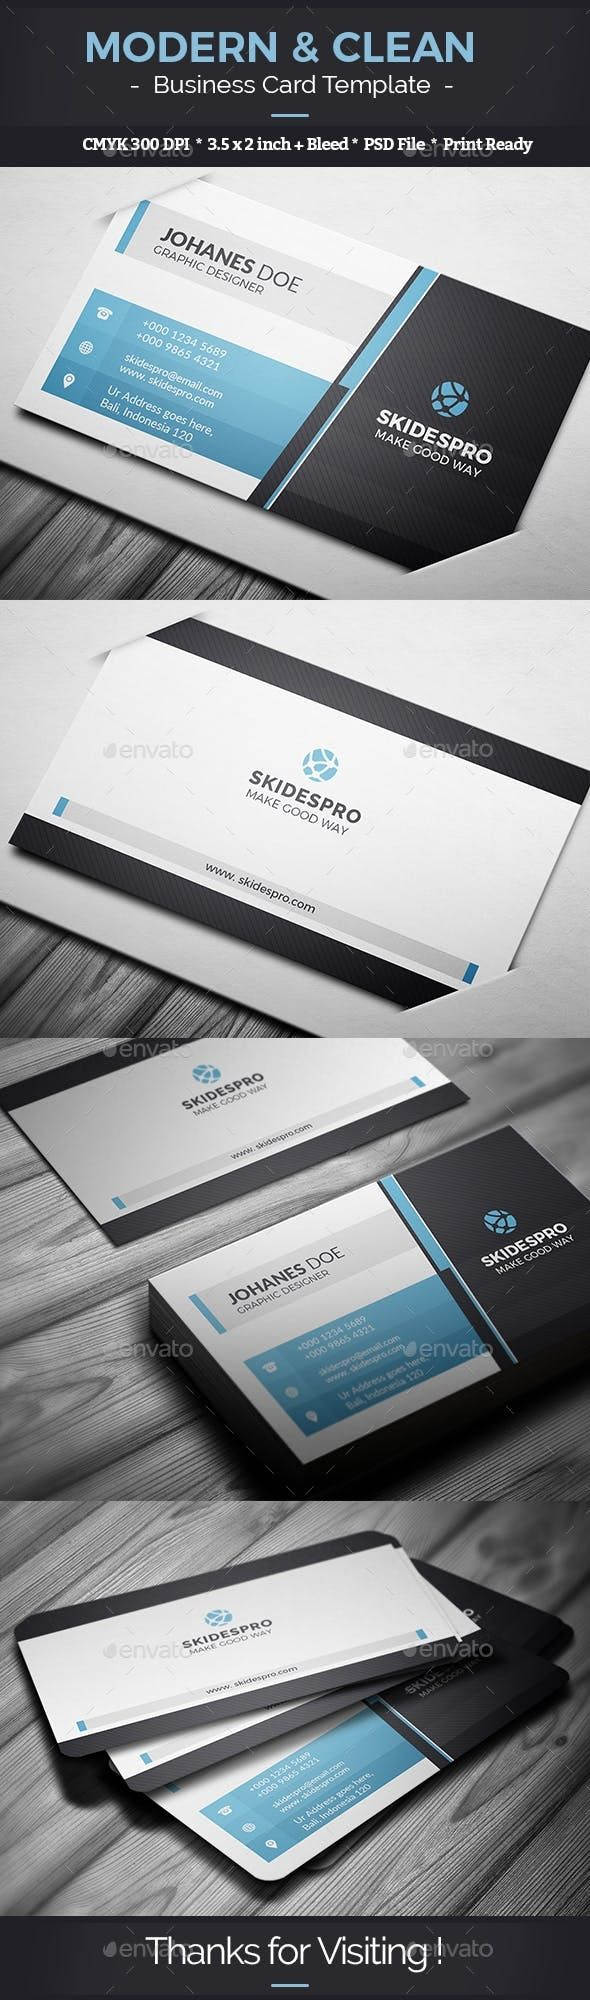 Pin By Backgrounds Patterns Graphic On Business Card Design Cleaning Business Cards Printing Business Cards Business Card Template Design